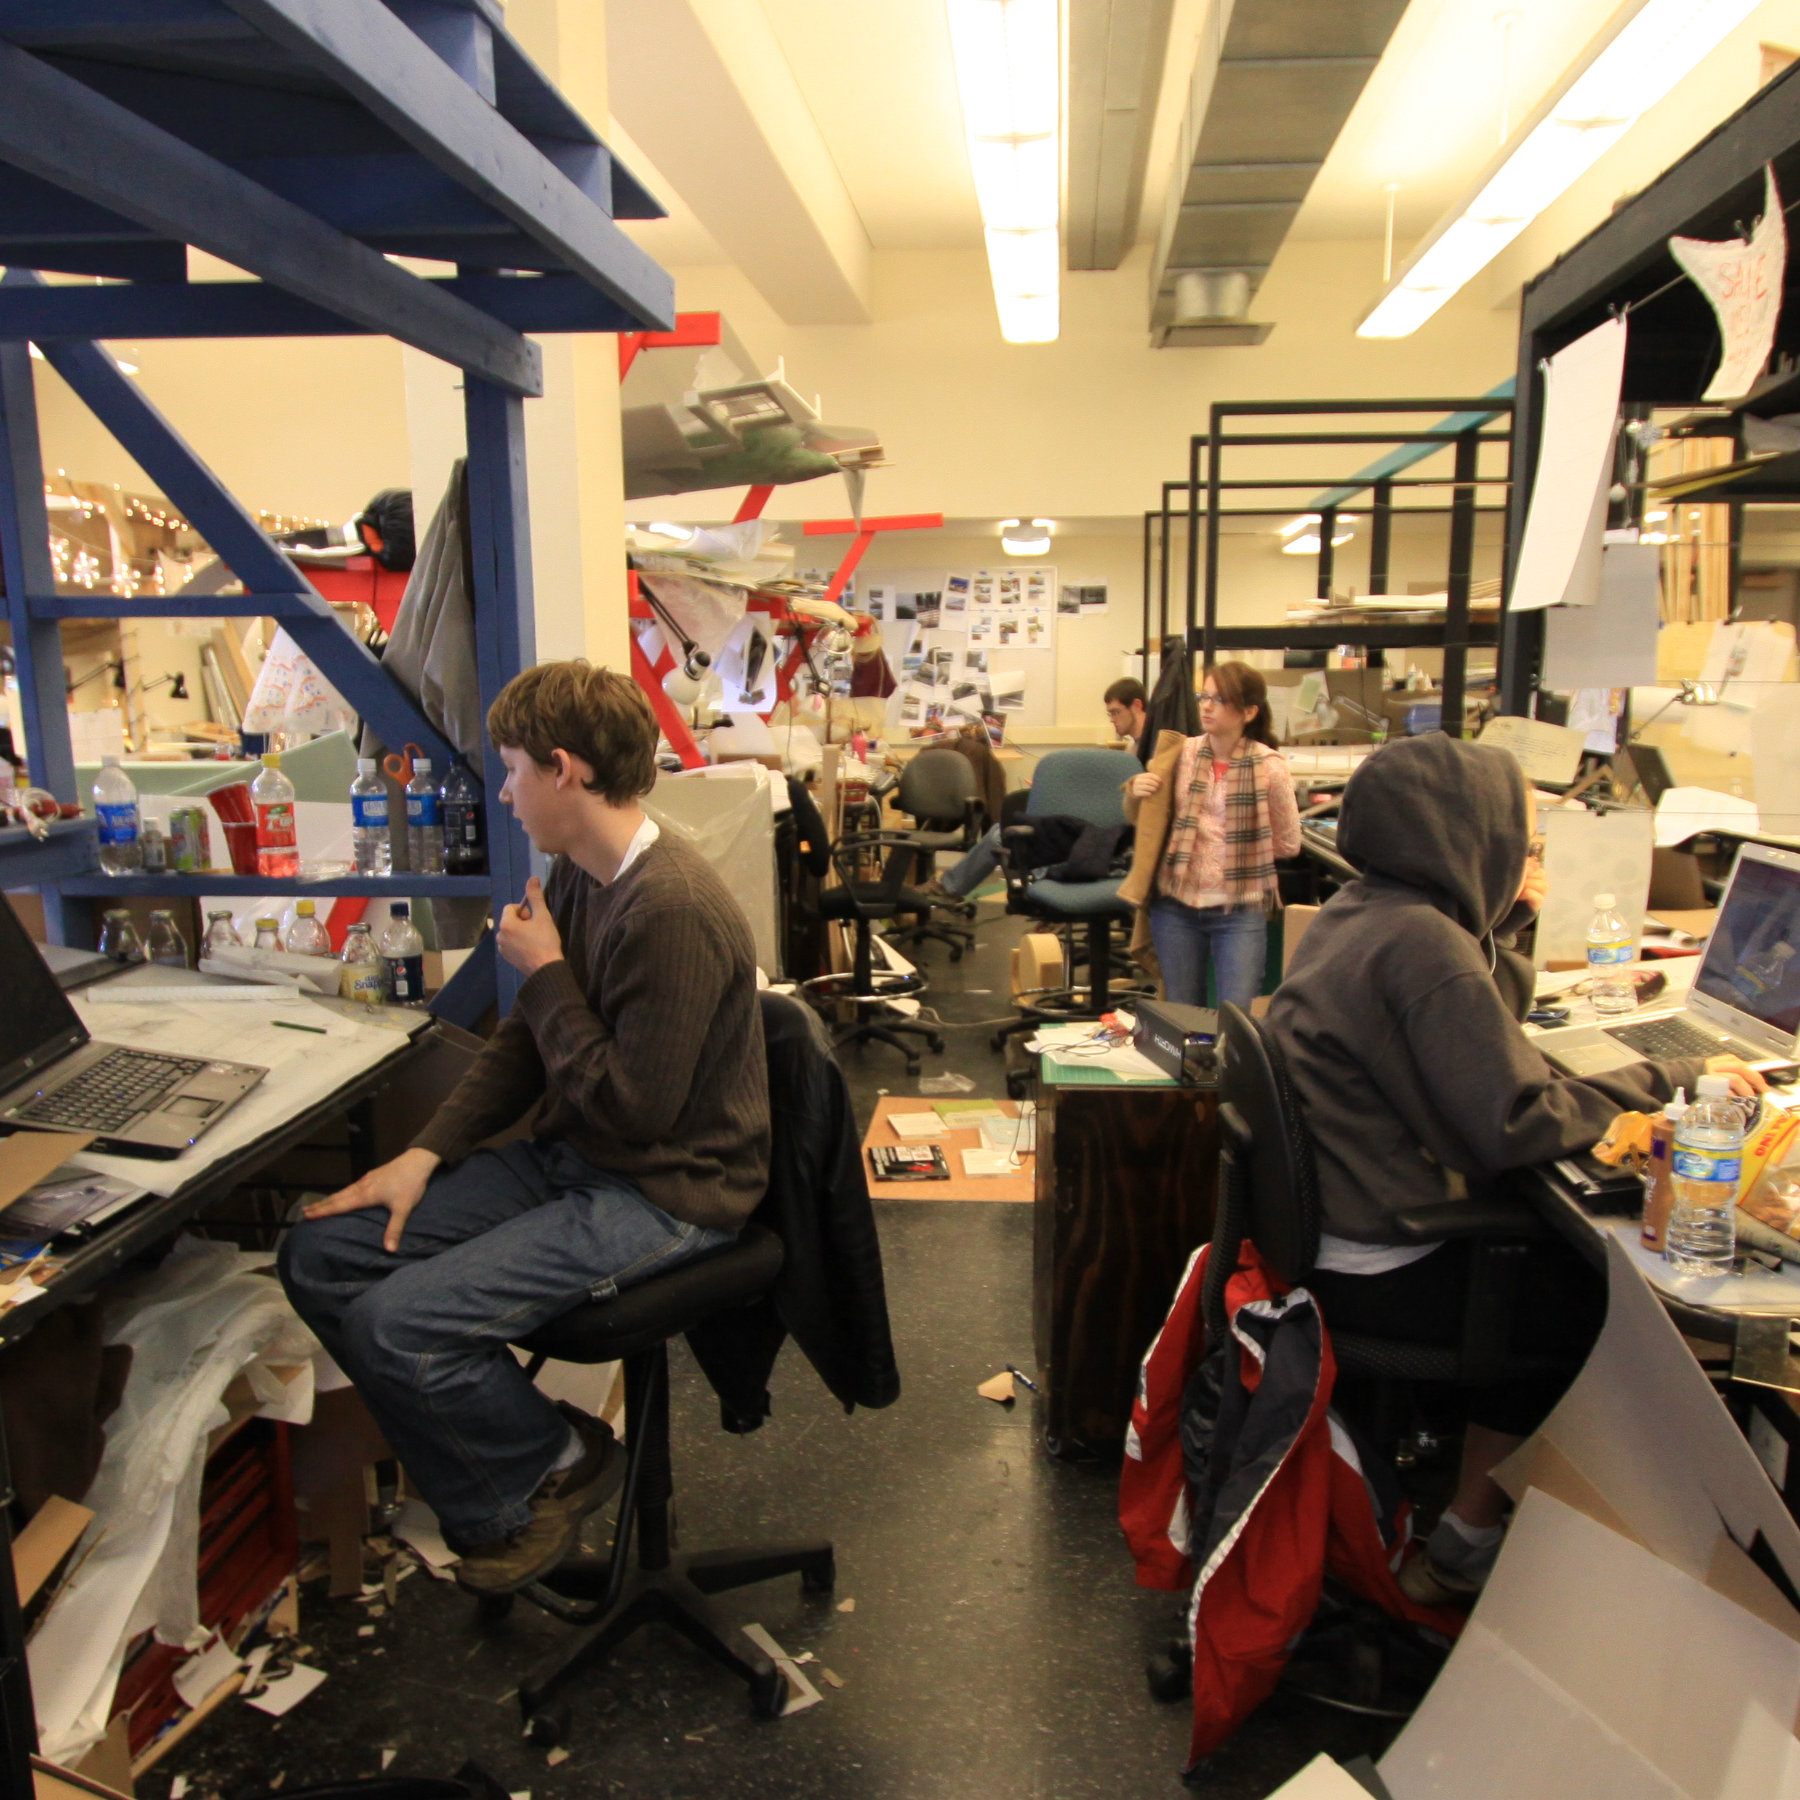 students working at their desks in studio